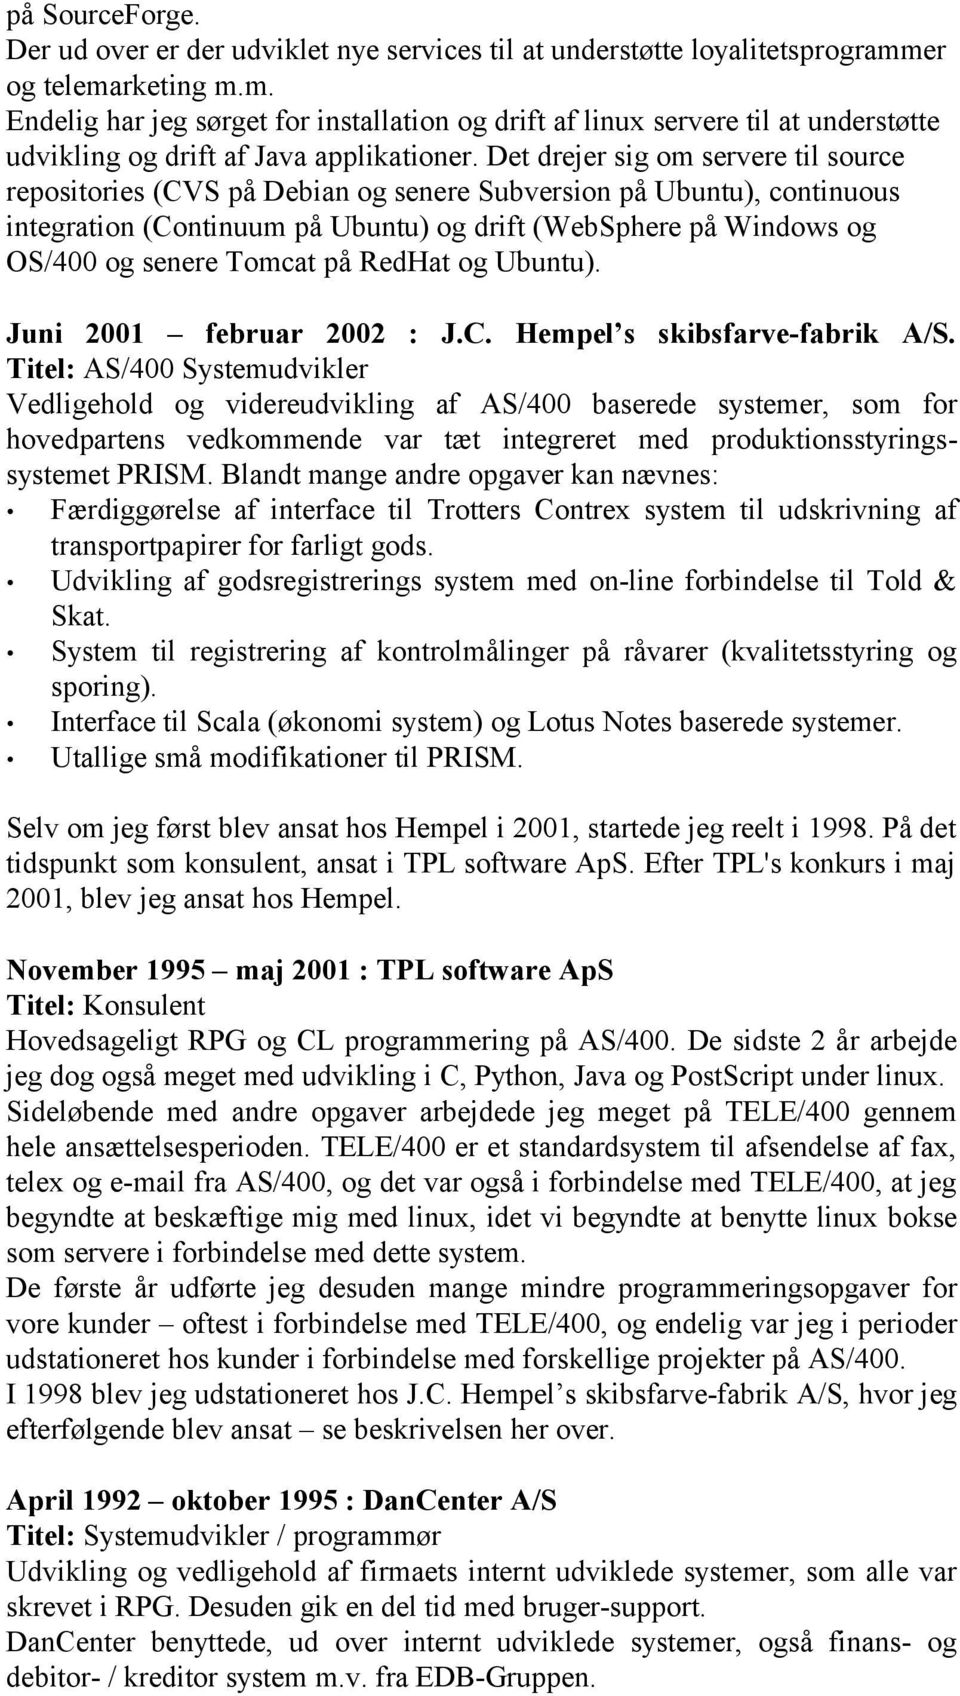 Det drejer sig om servere til source repositories (CVS på Debian og senere Subversion på Ubuntu), continuous integration (Continuum på Ubuntu) og drift (WebSphere på Windows og OS/400 og senere